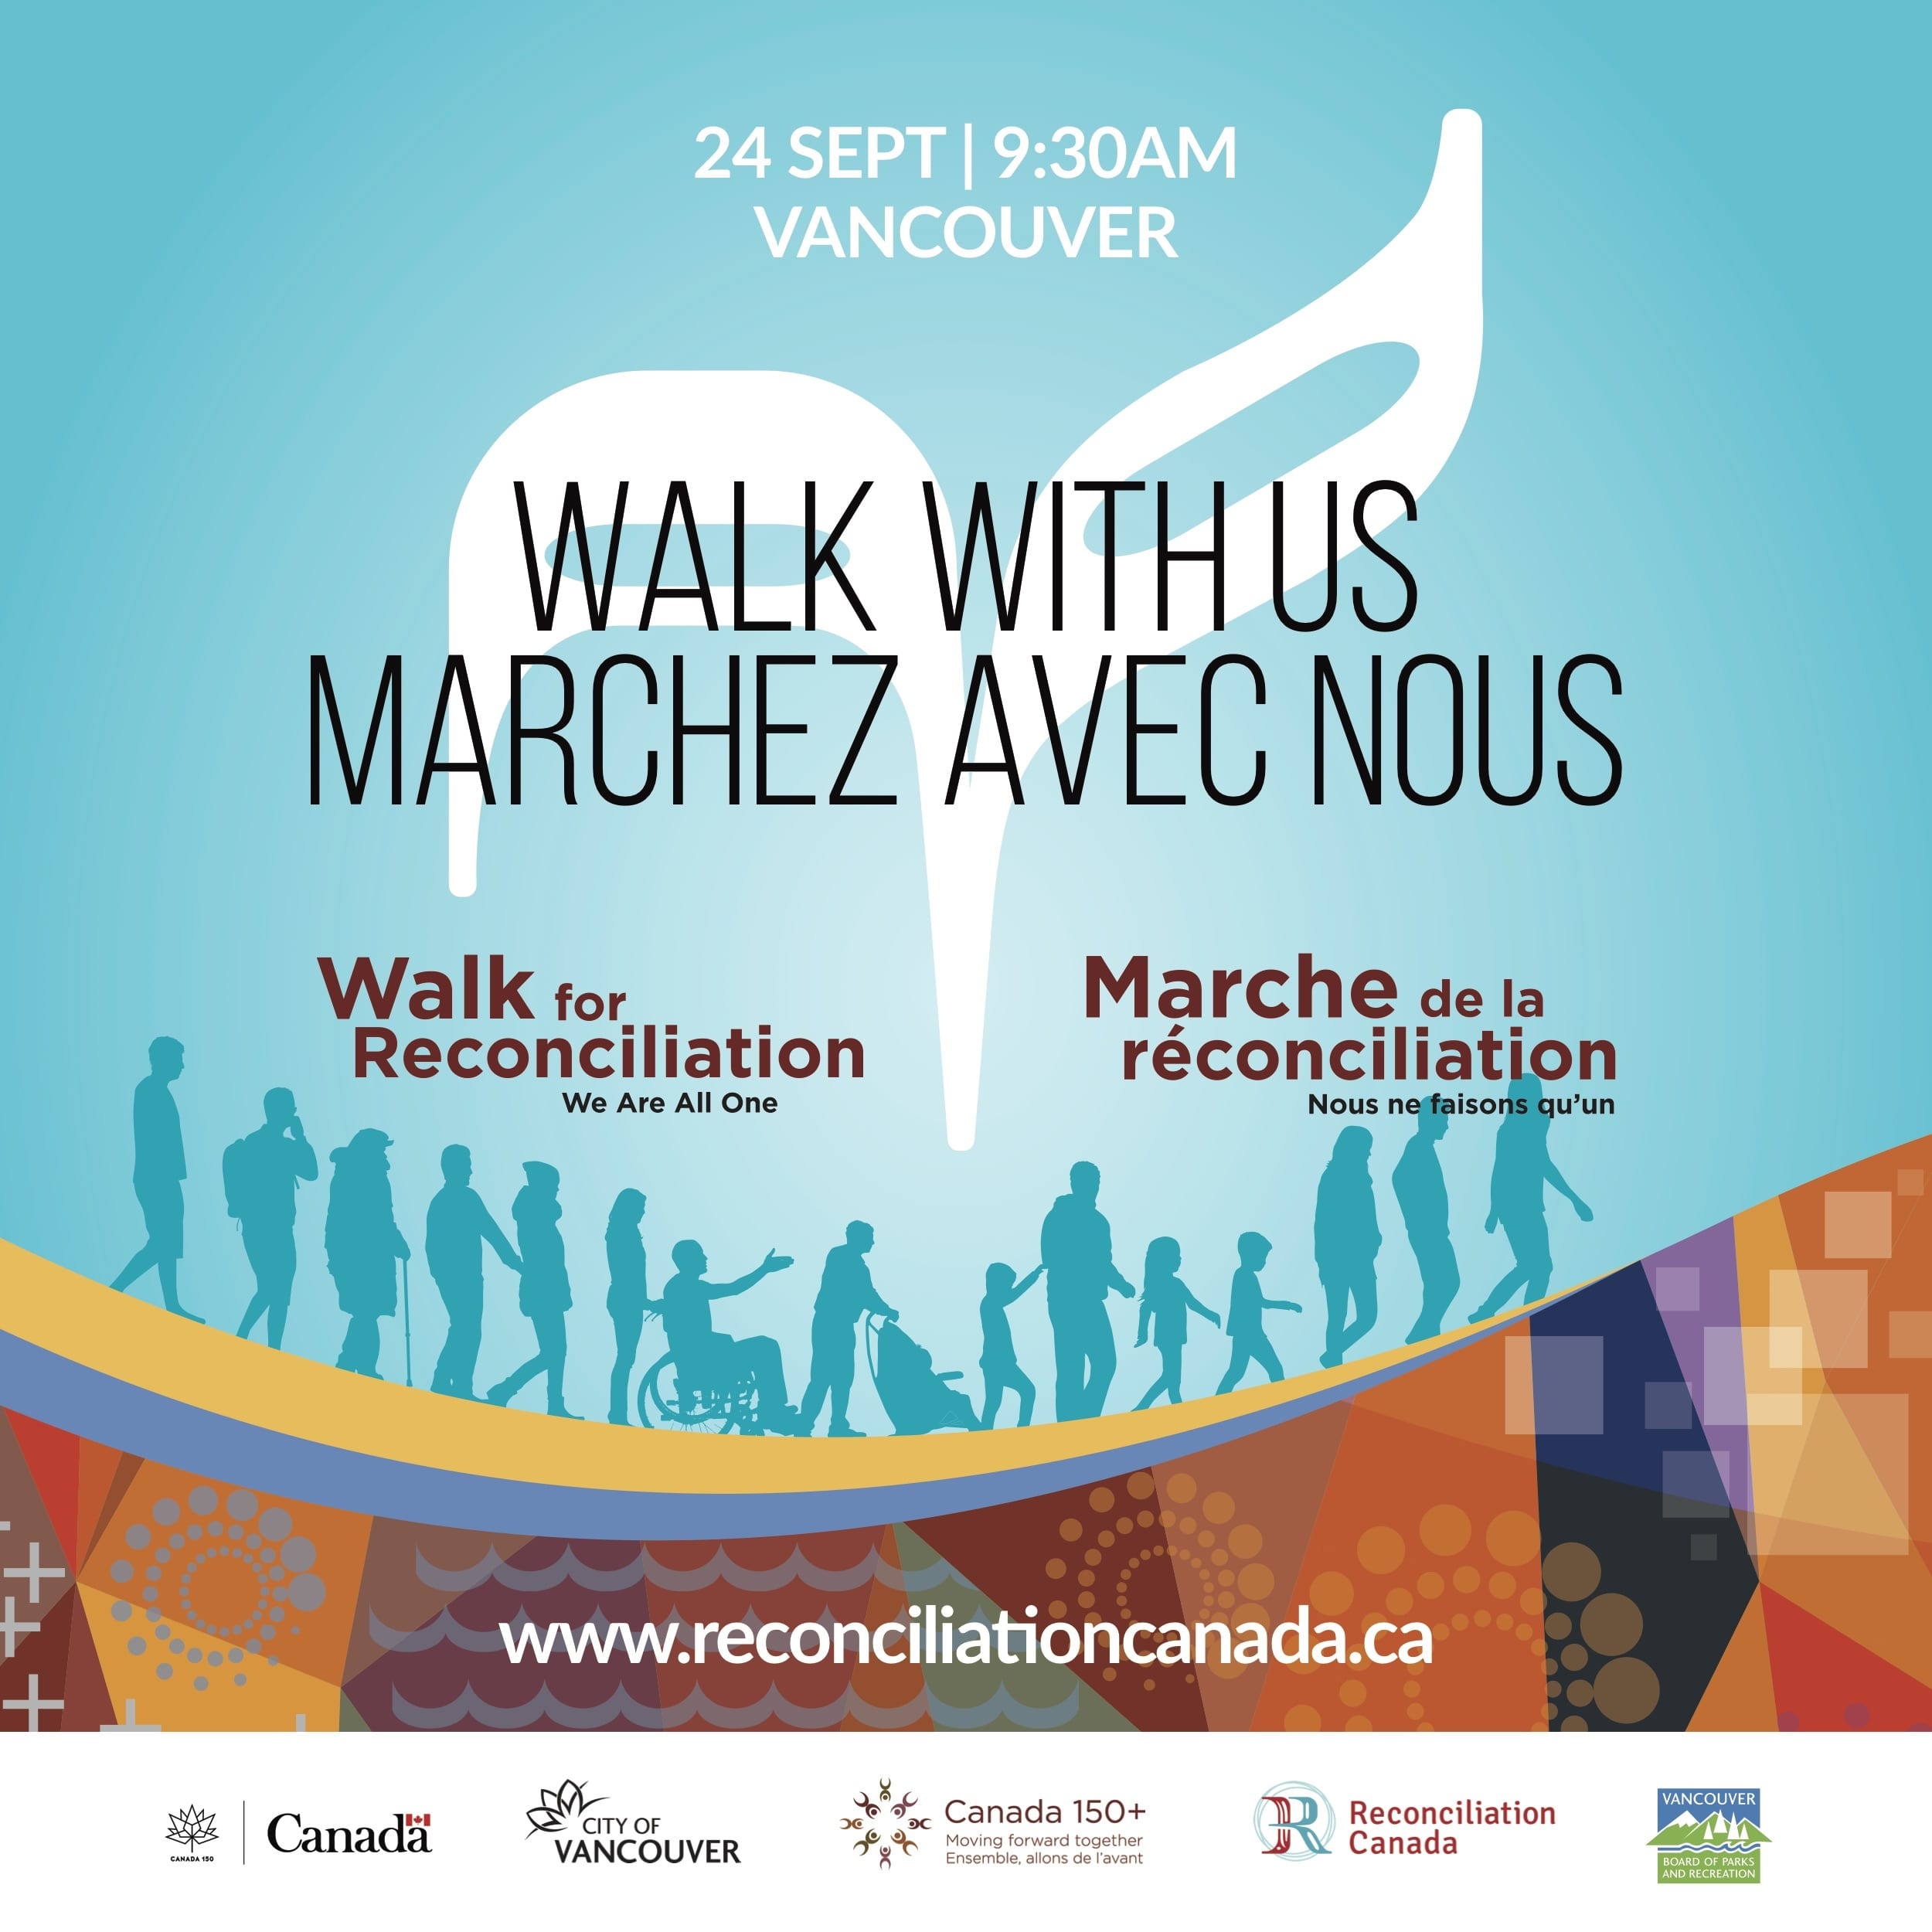 Walk for Reconciliation from Downtown Vancouver to Strathcona Park